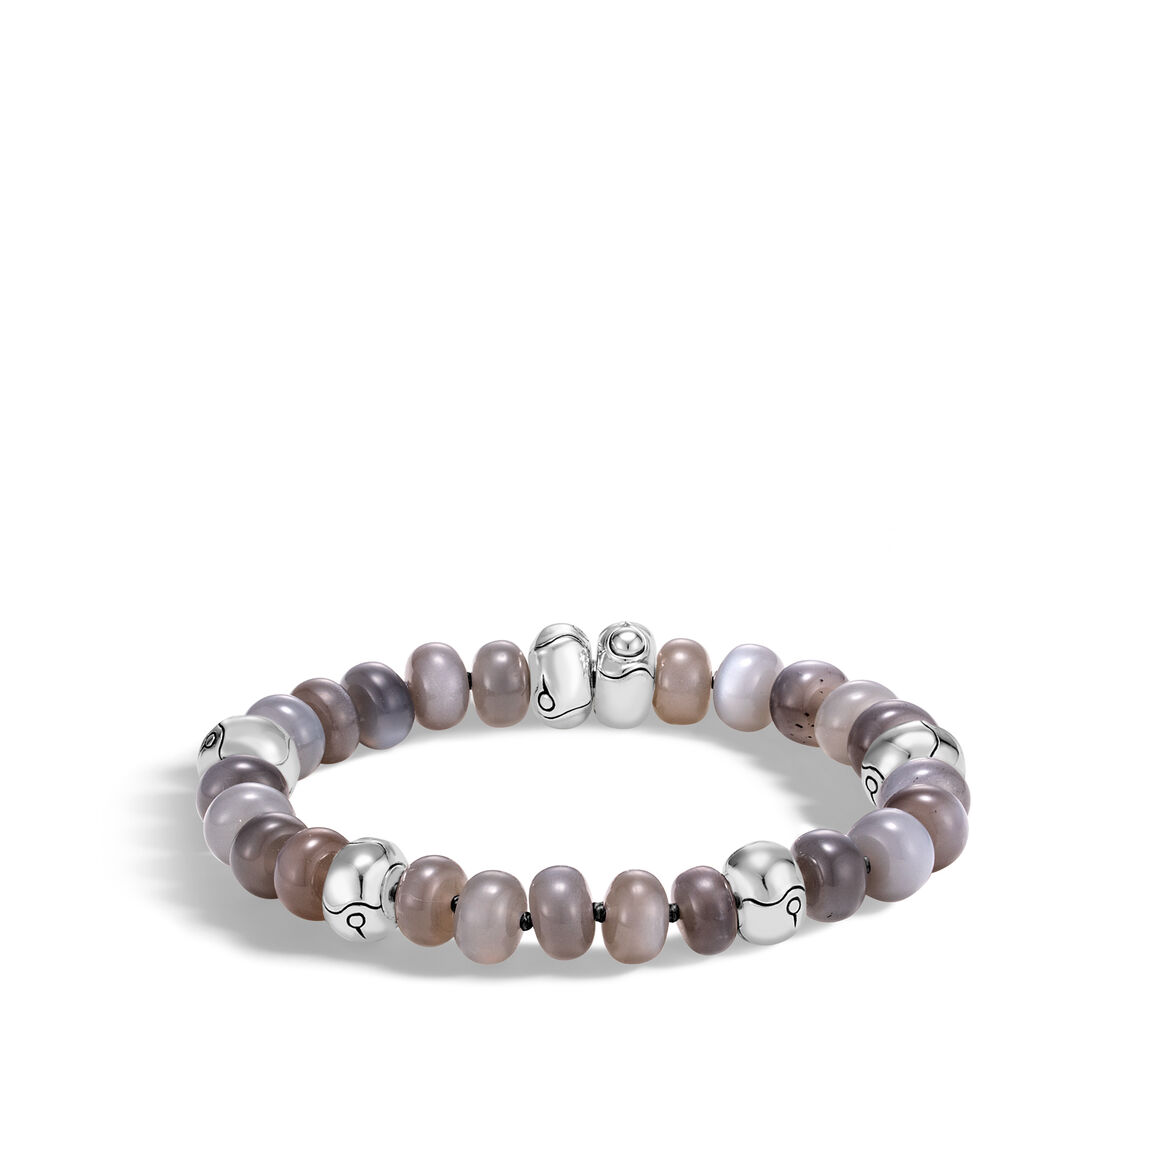 Bamboo Bead Bracelet in Silver with Gemstone